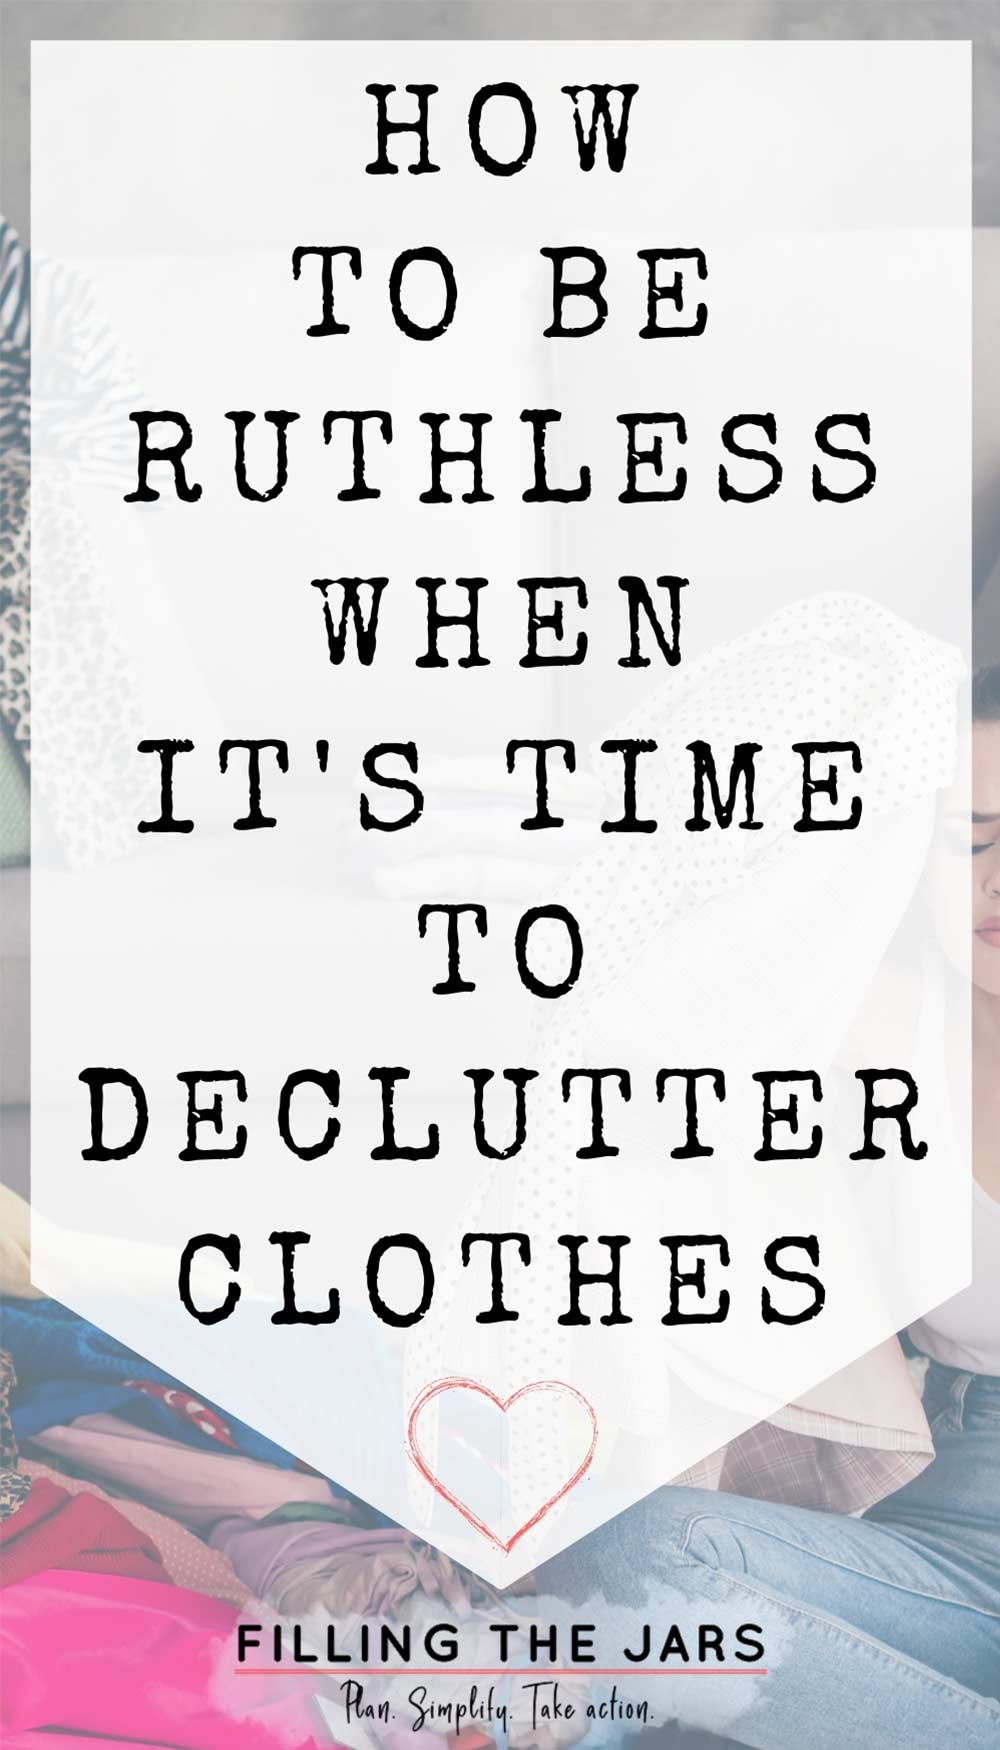 Text how to be ruthless when decluttering clothes on white background over image of woman sitting next to pile of clothing while deciding what to declutter.